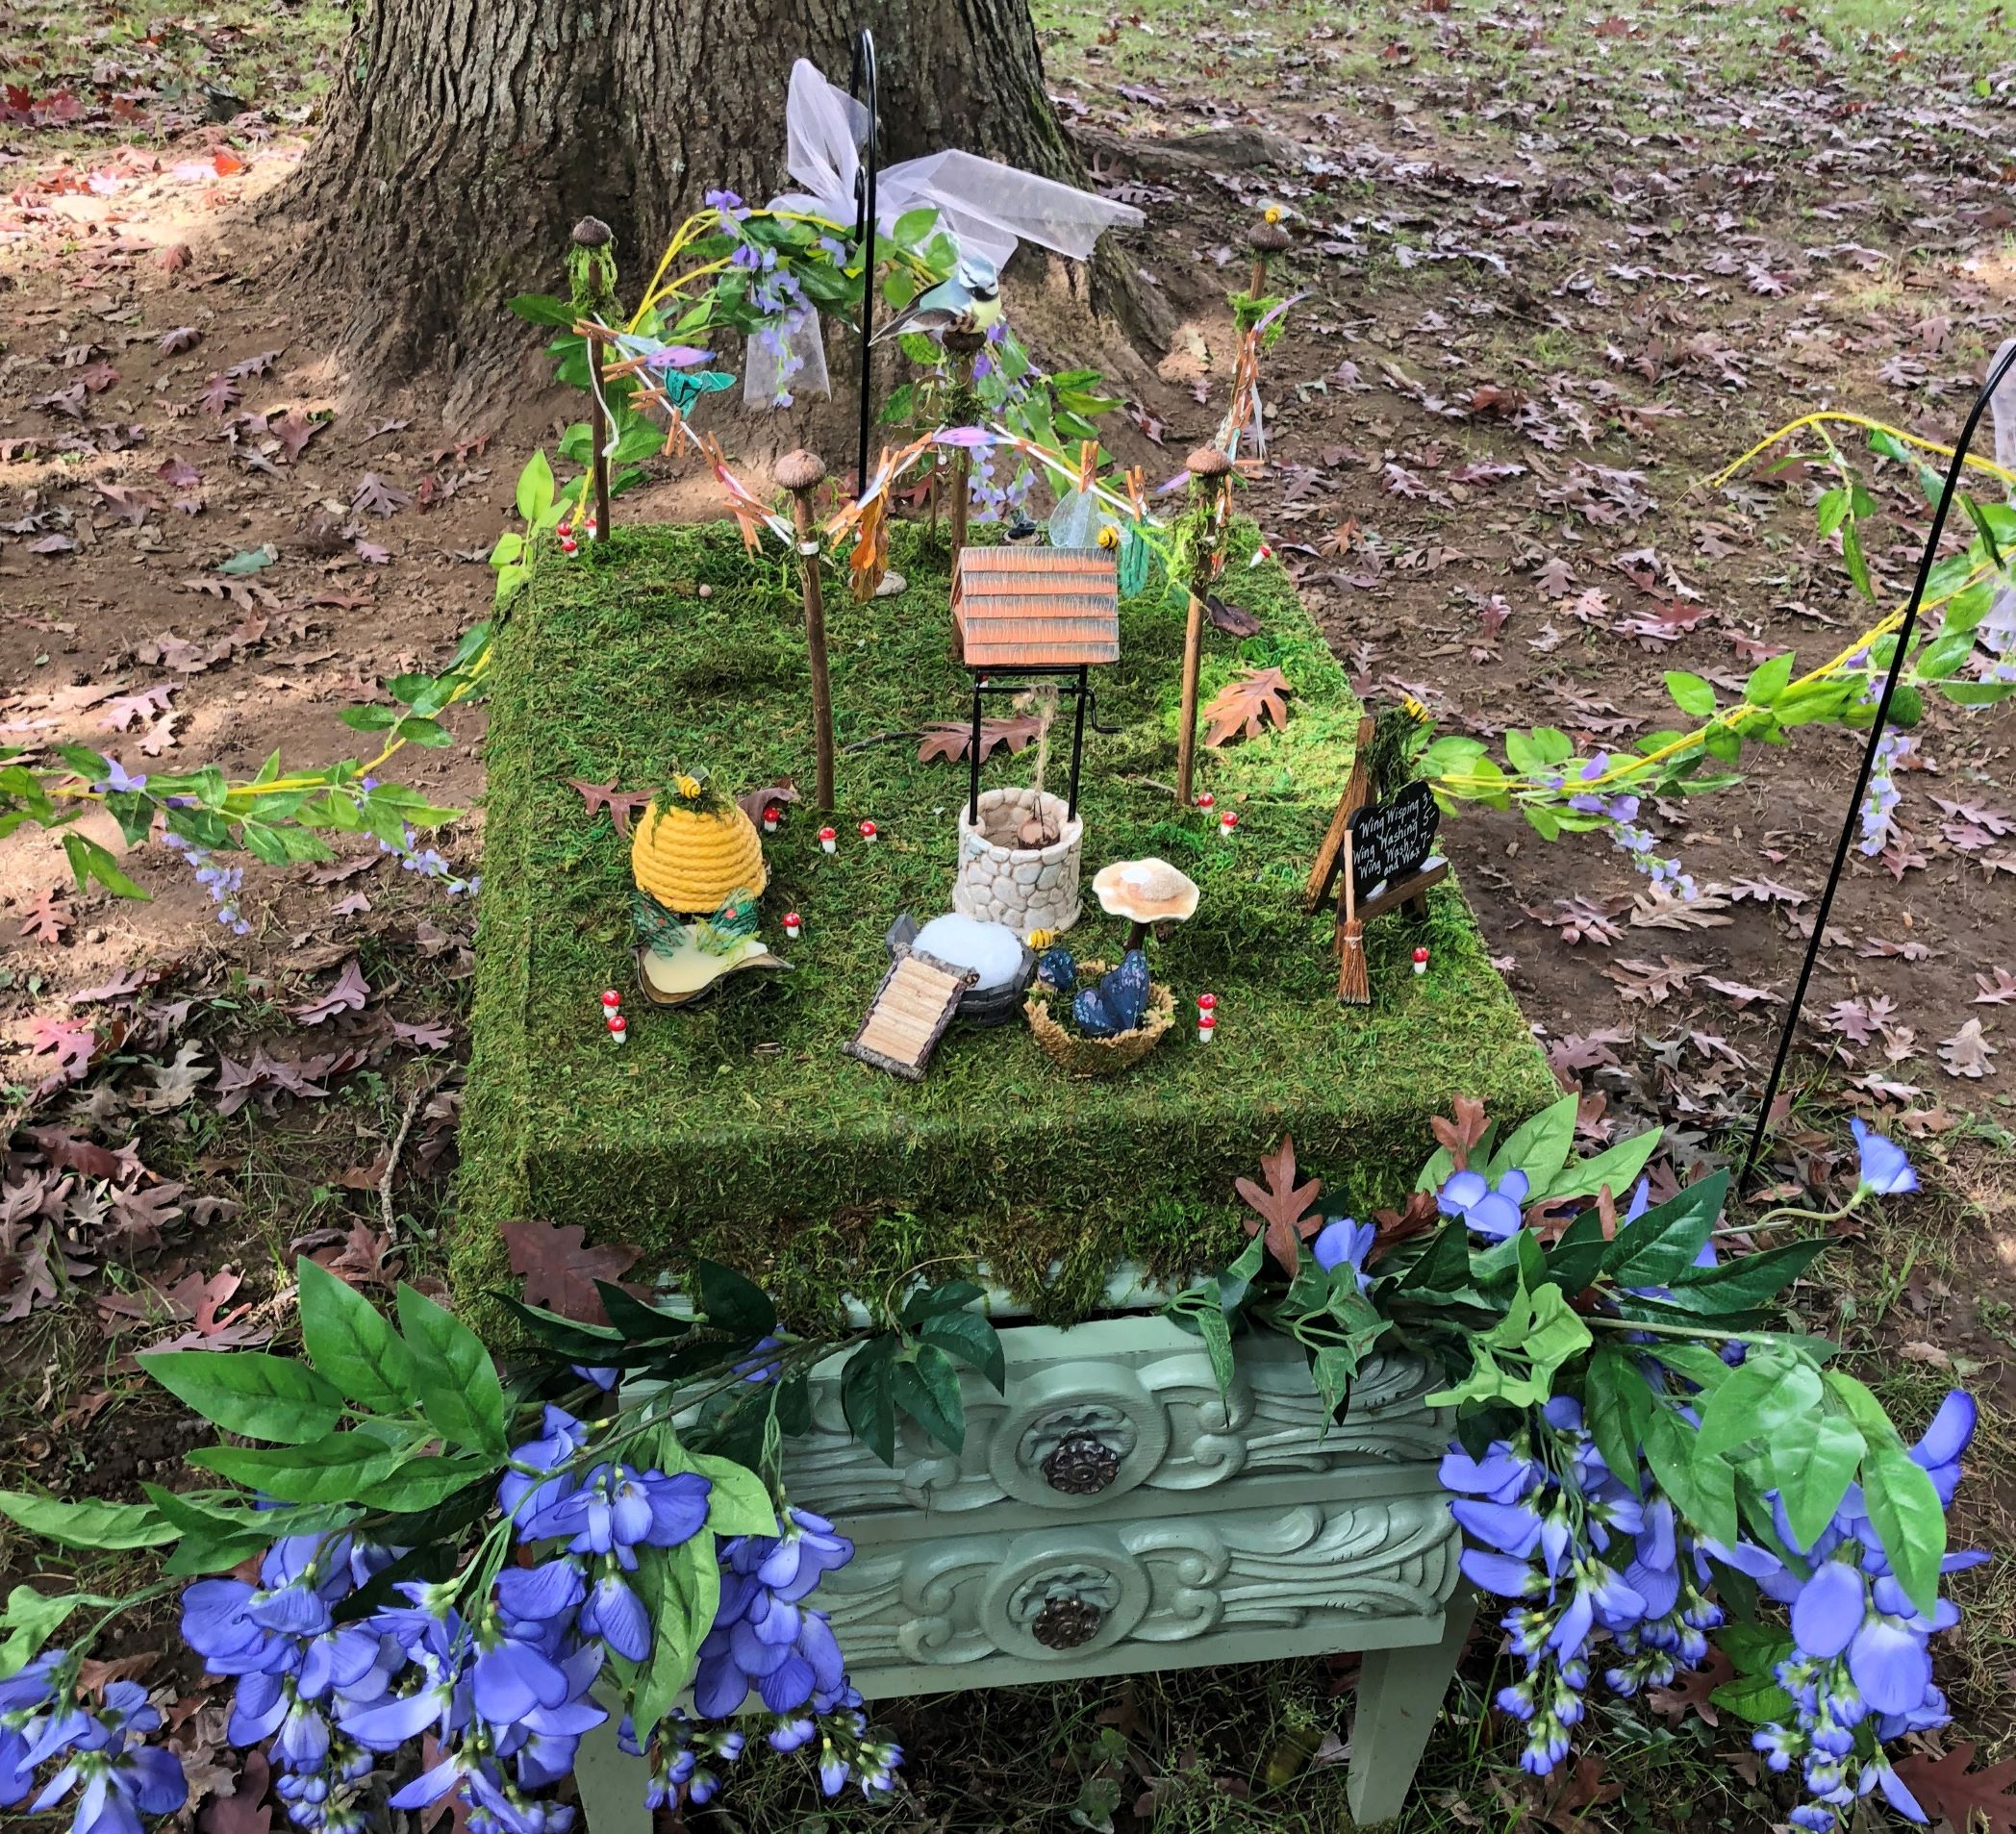 Fairy Houses and Strategies for Inspiring the Wonder of Nature in Kids and in Our Inner Kids